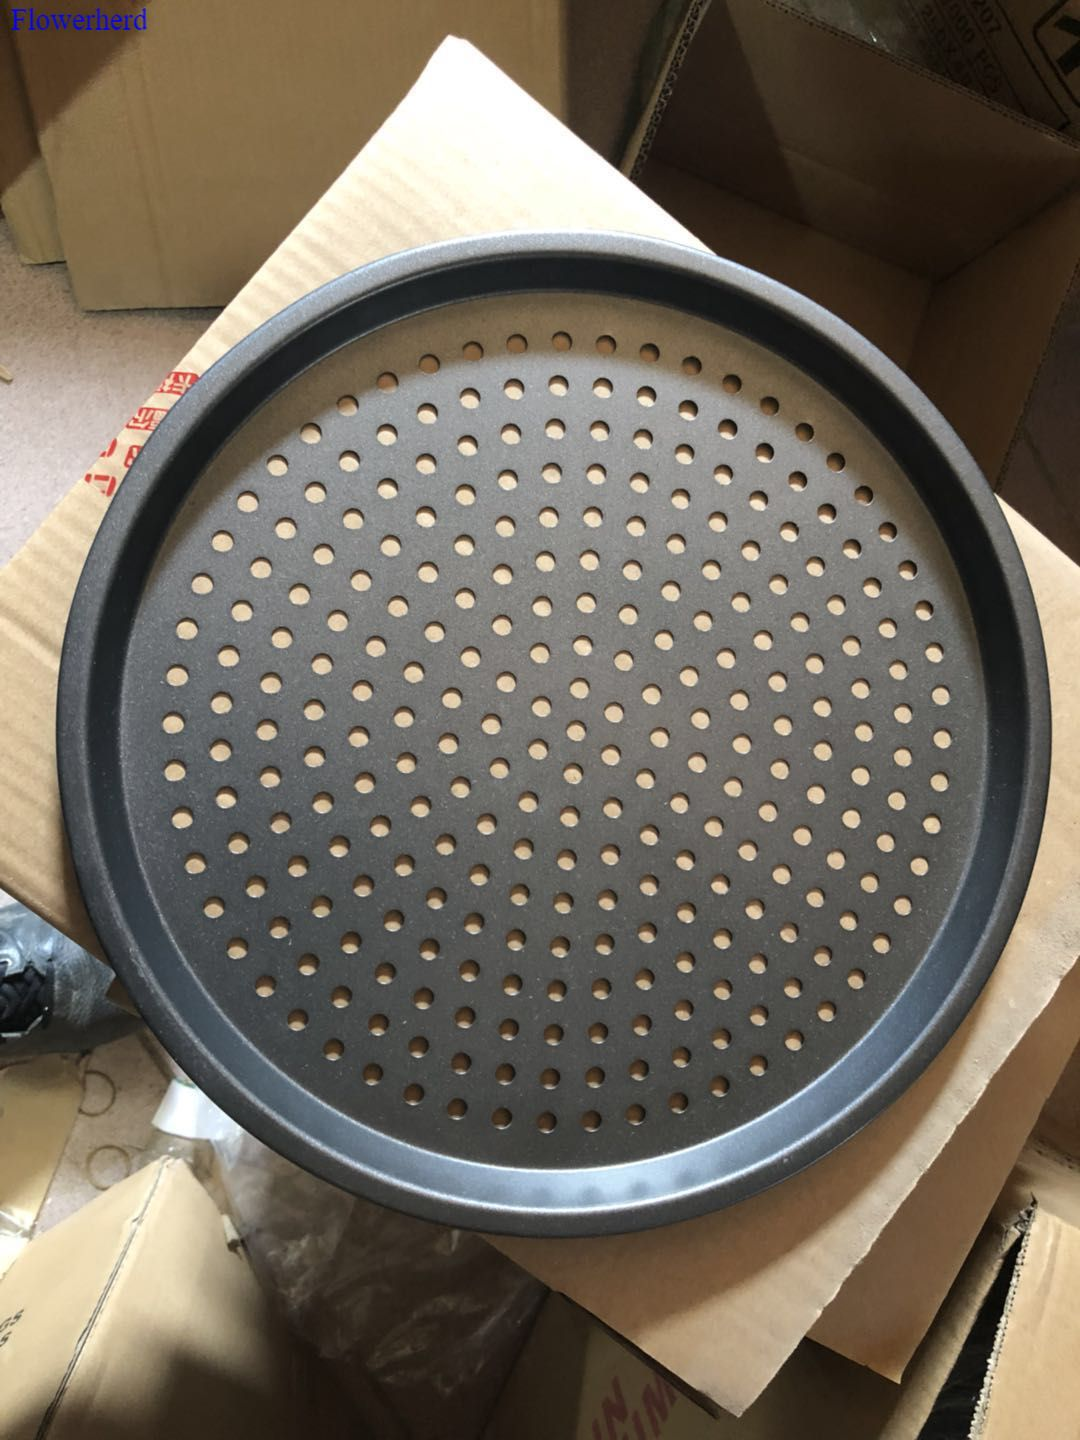 Innovative Bakeware Home Kitchen Baking Tools Perforated Carbon Steel Nonstick Pizza Baking Pan Tray Pizza Plate Dishes Holder